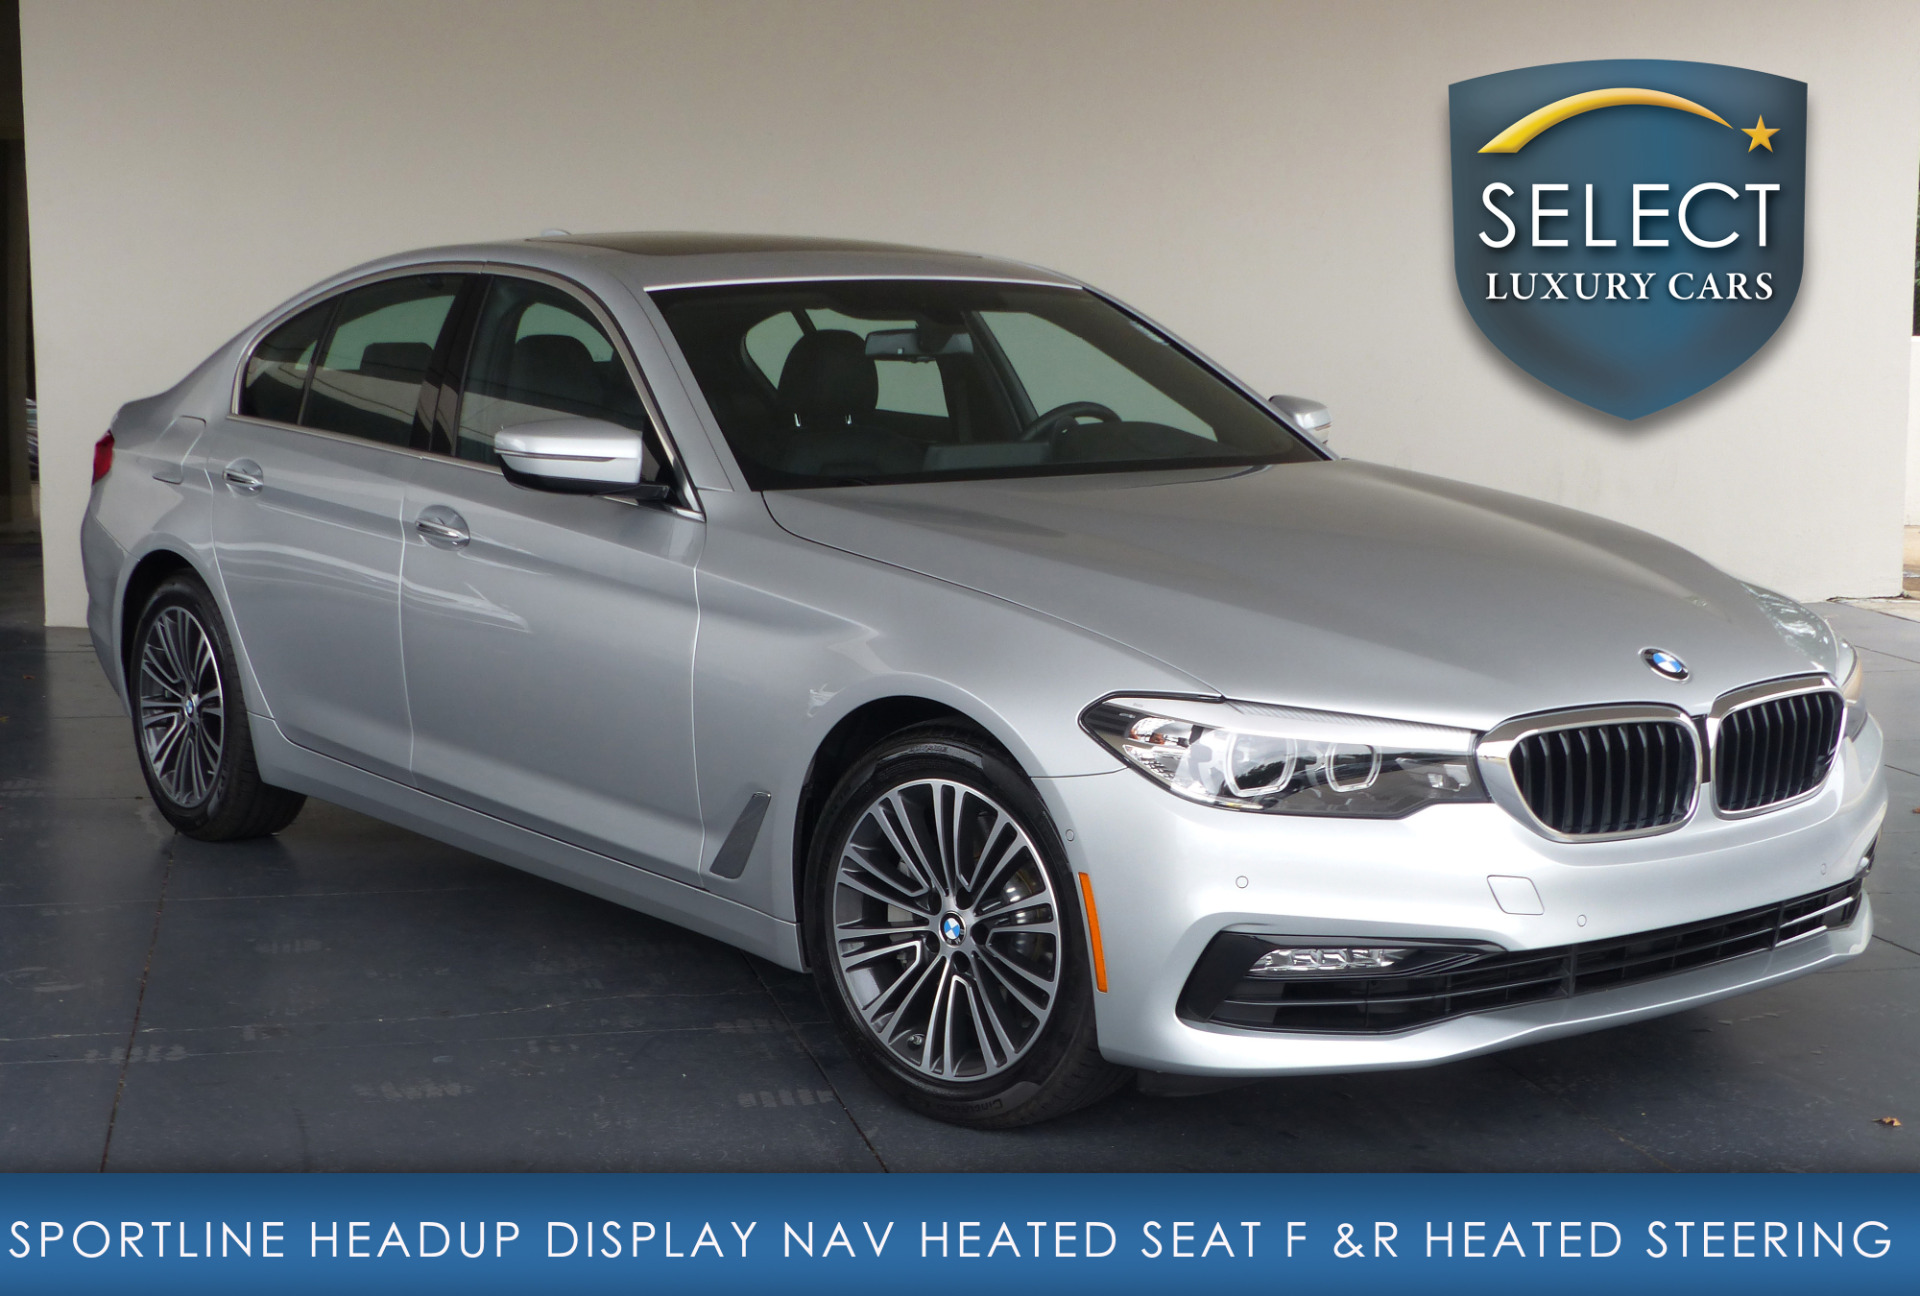 used 2017 bmw 5 series 530i marietta ga. Black Bedroom Furniture Sets. Home Design Ideas